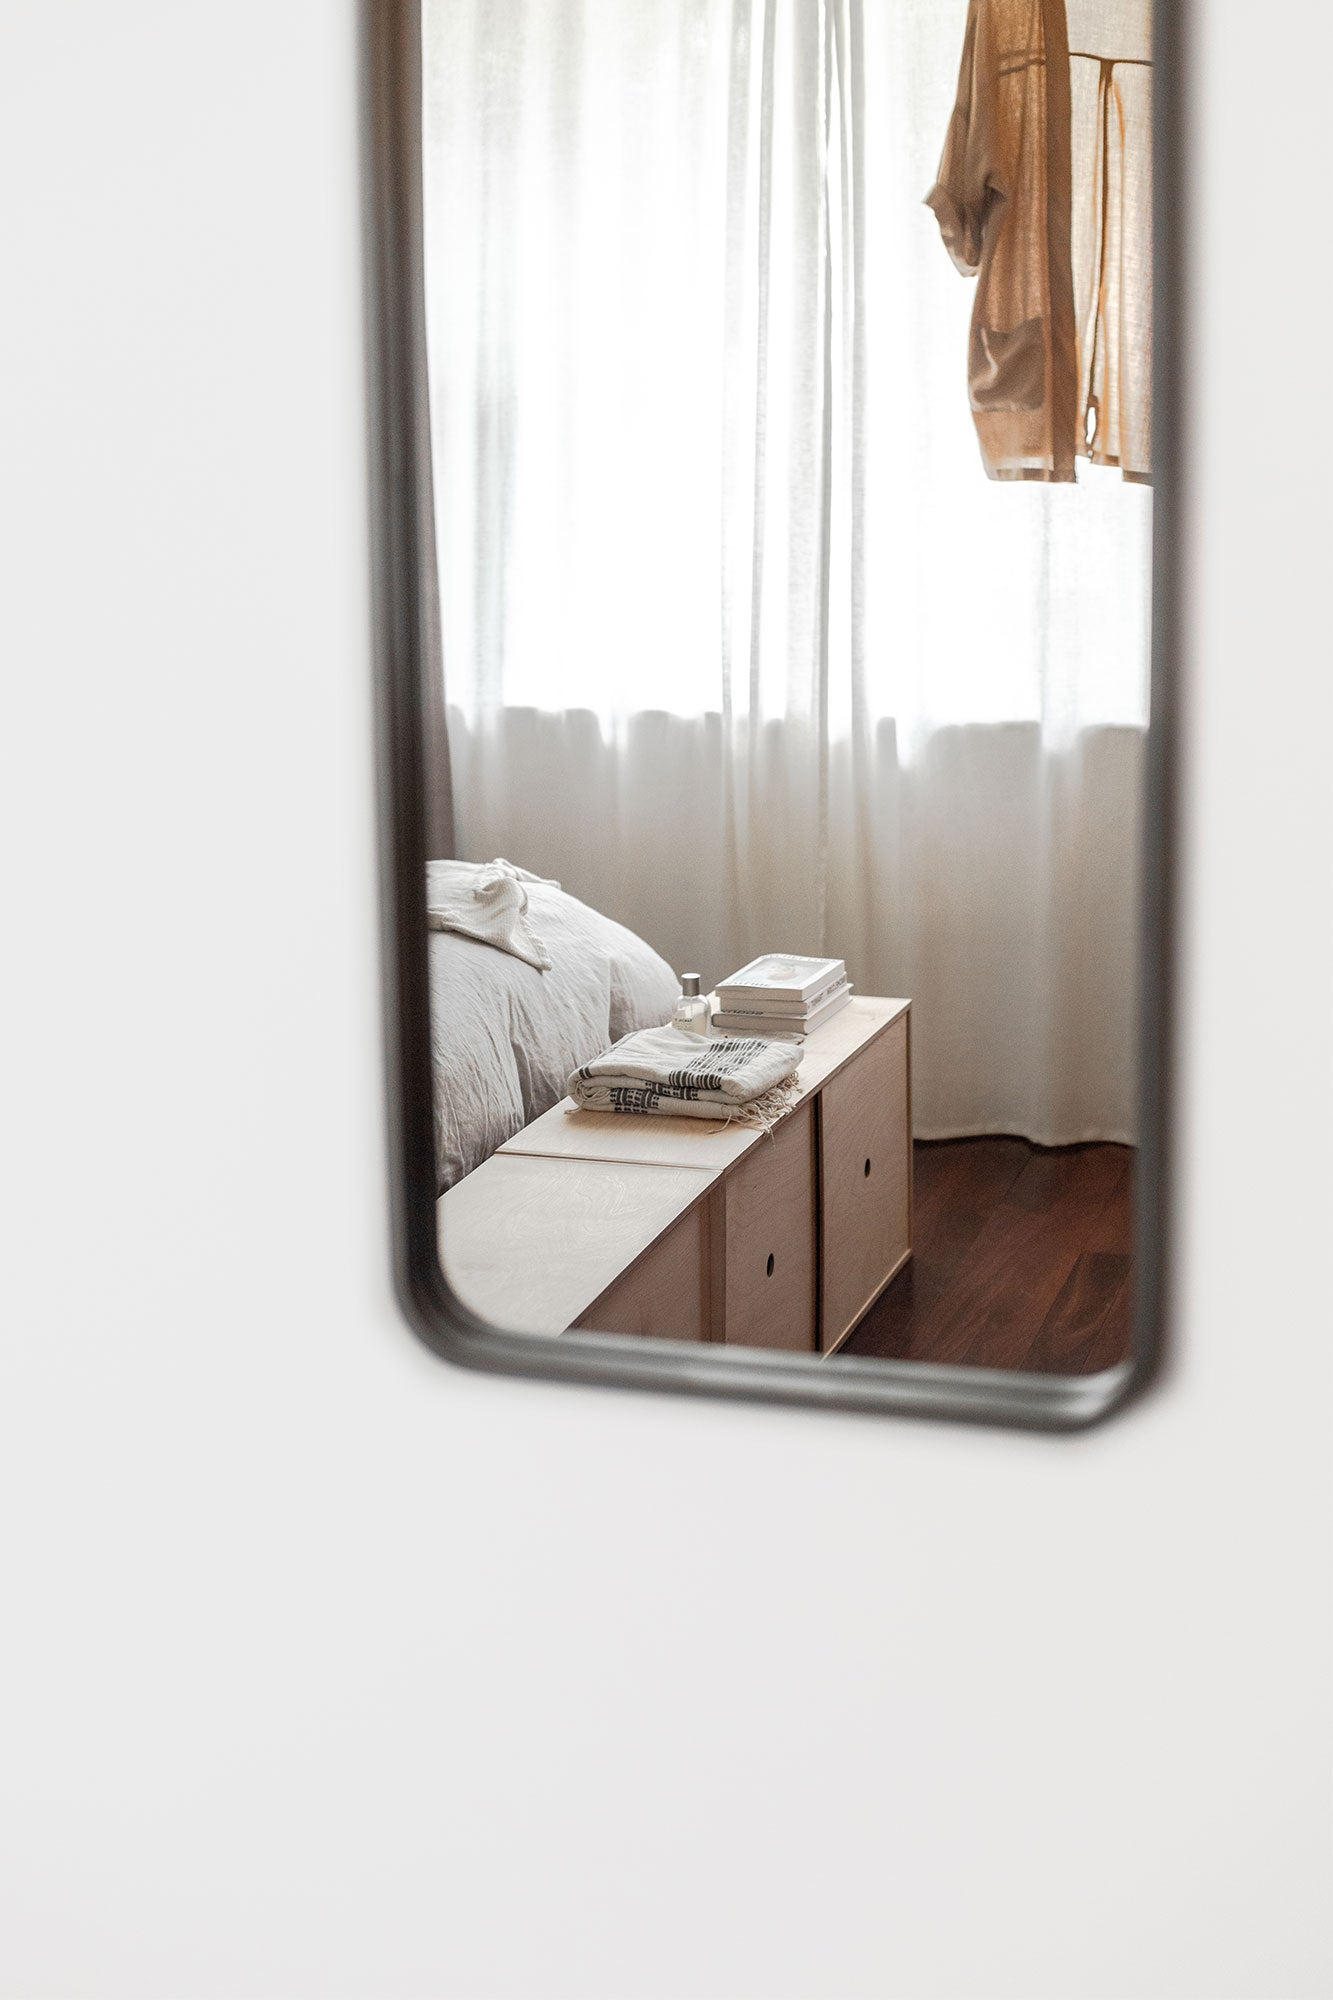 Plyroom Meghan Plowman Big Nest Reflection Bedroom